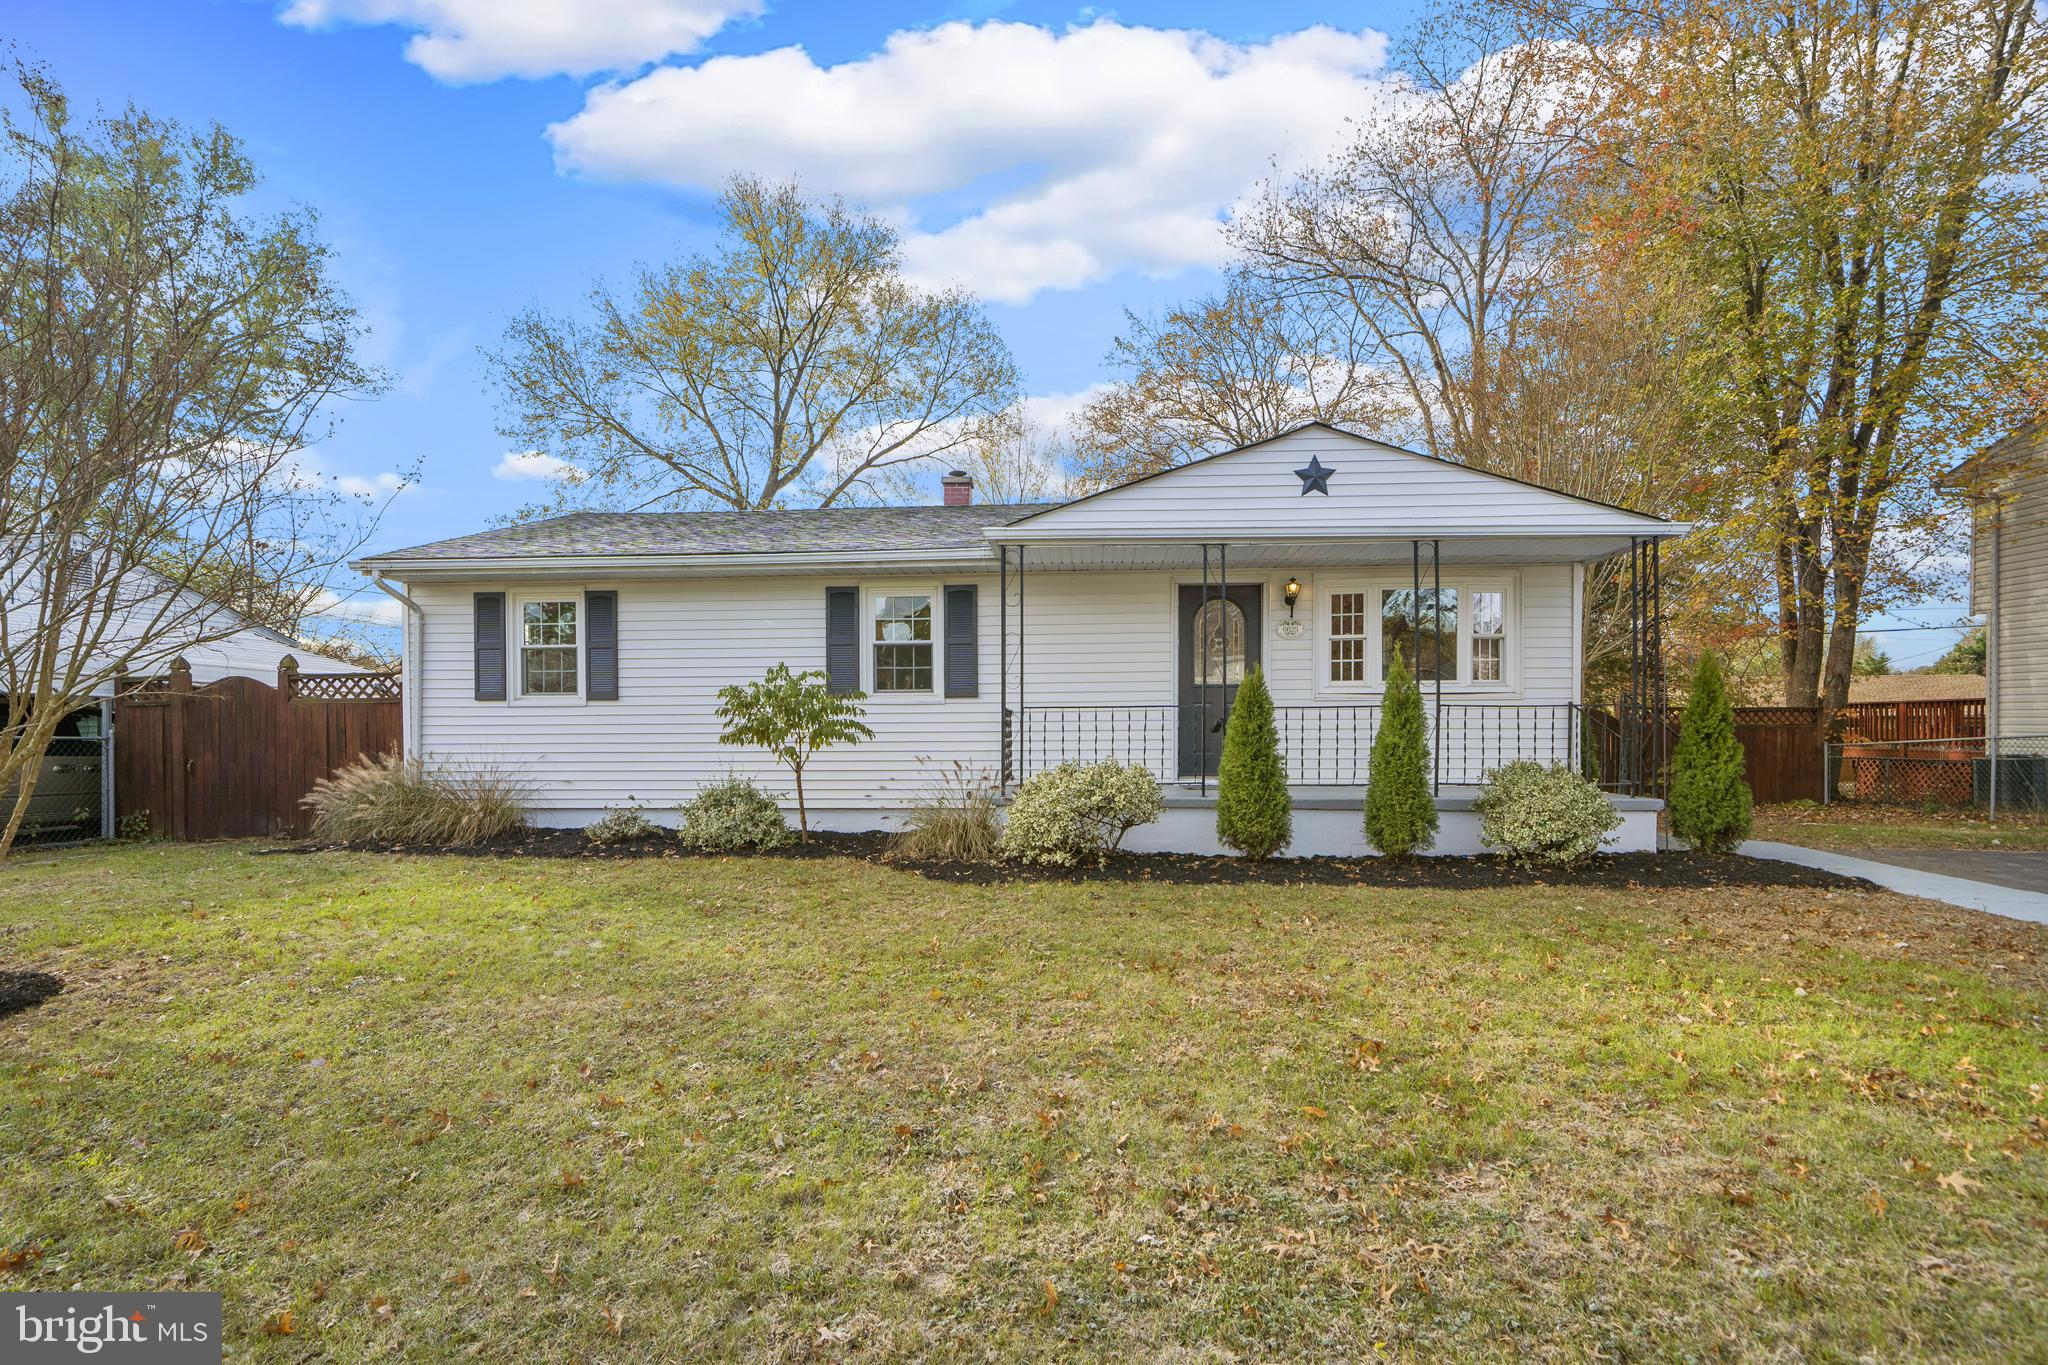 Oh snap!!! Book your appointment TODAY to tour this completely renovated rambler with a fully finish